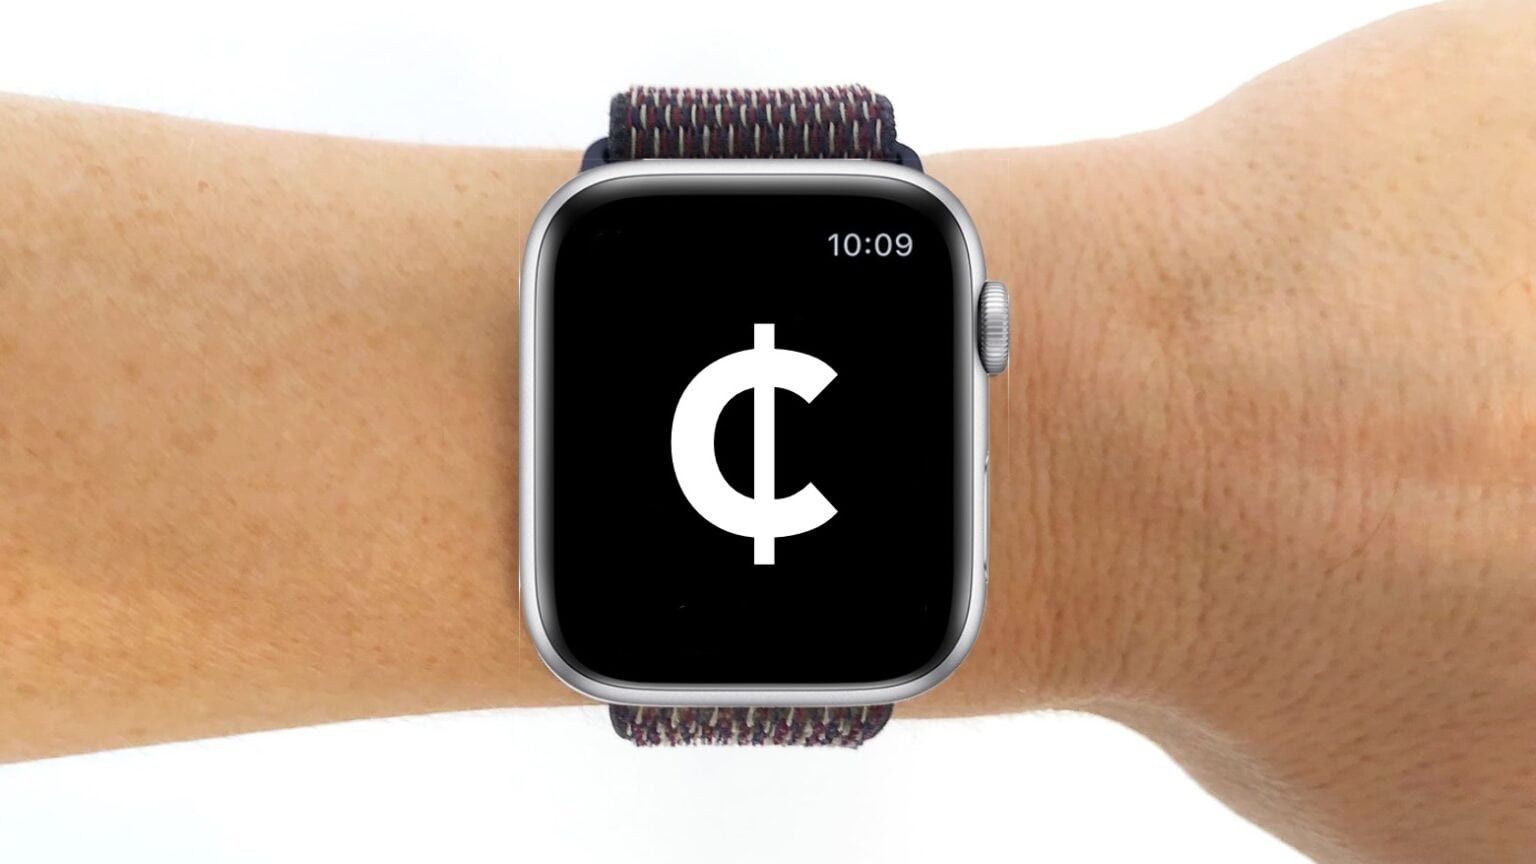 More affordable Apple Watch would be nice.